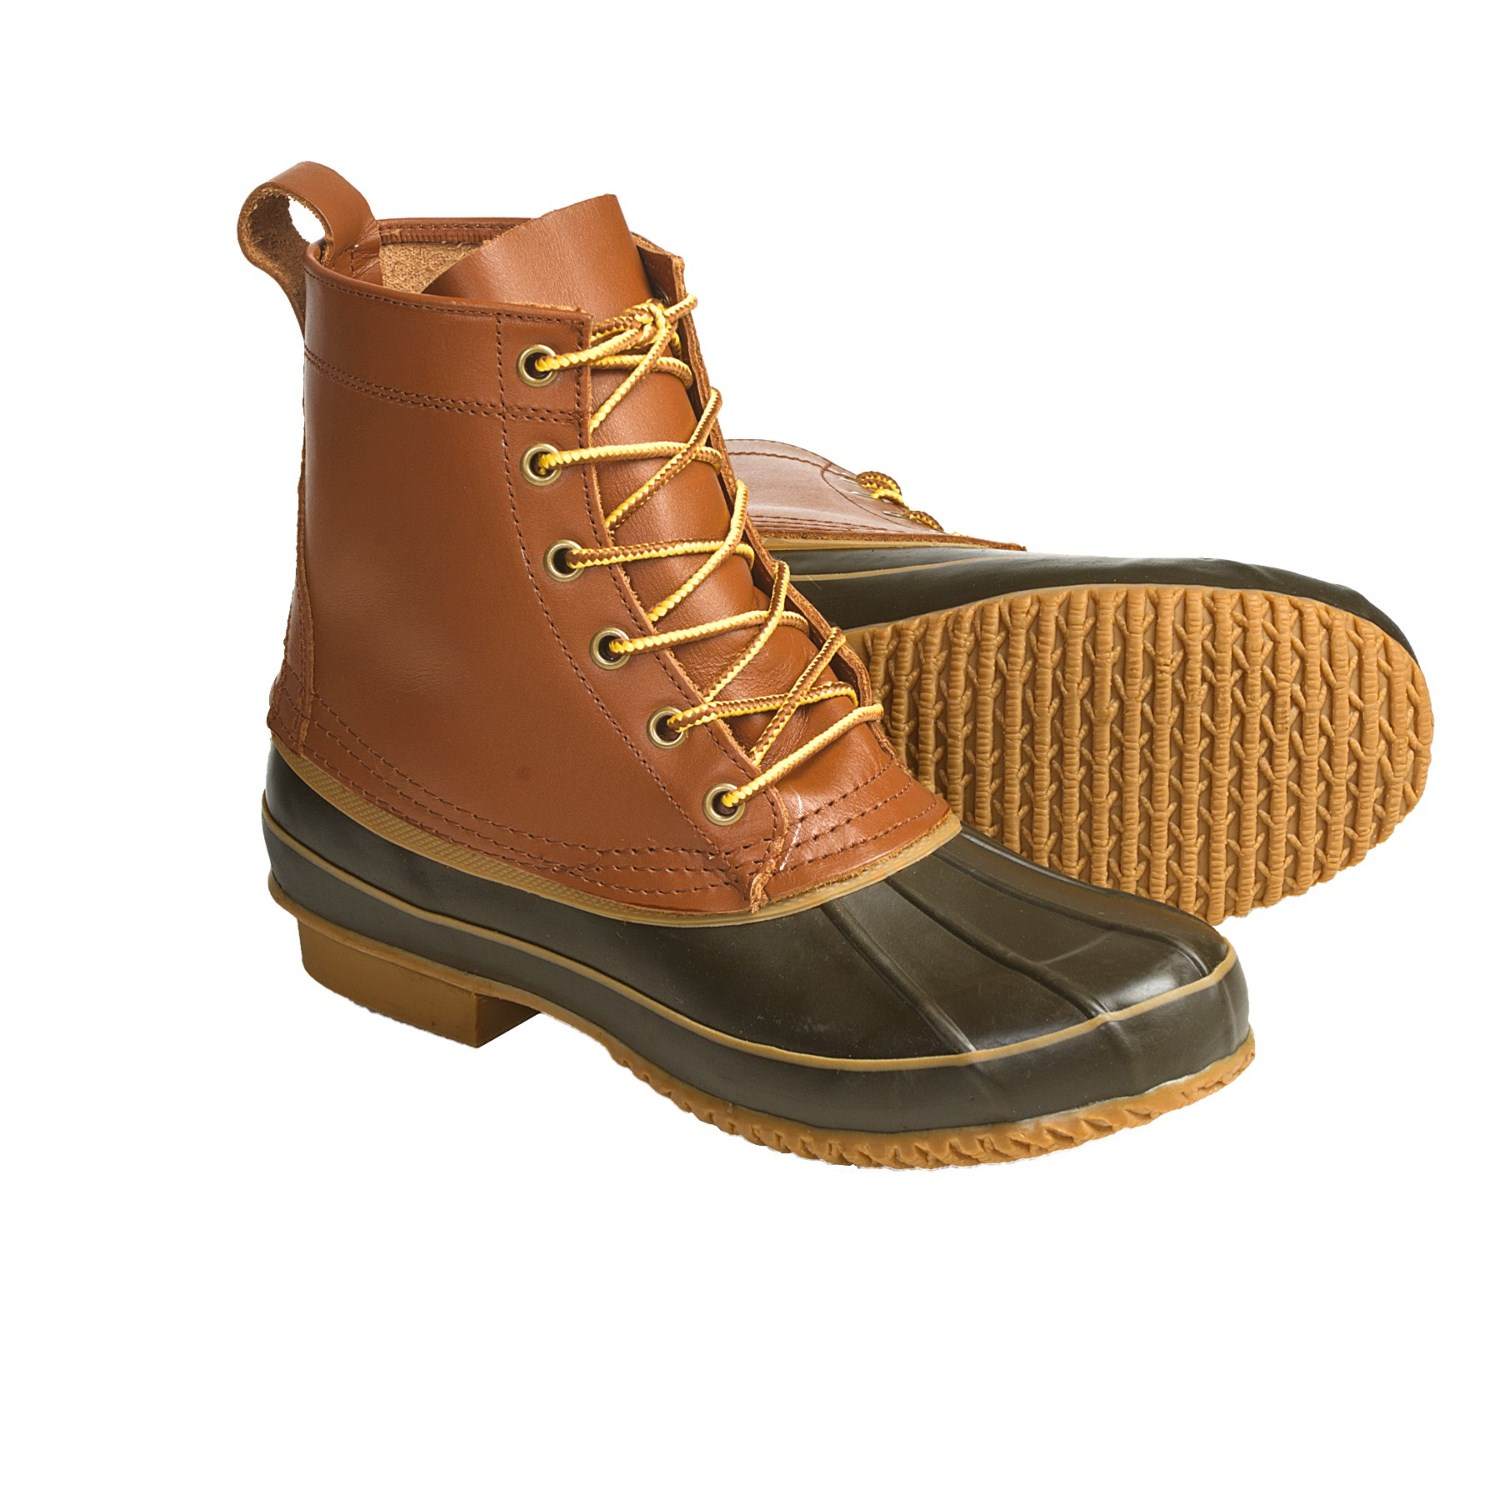 Duck boots men - photo#2